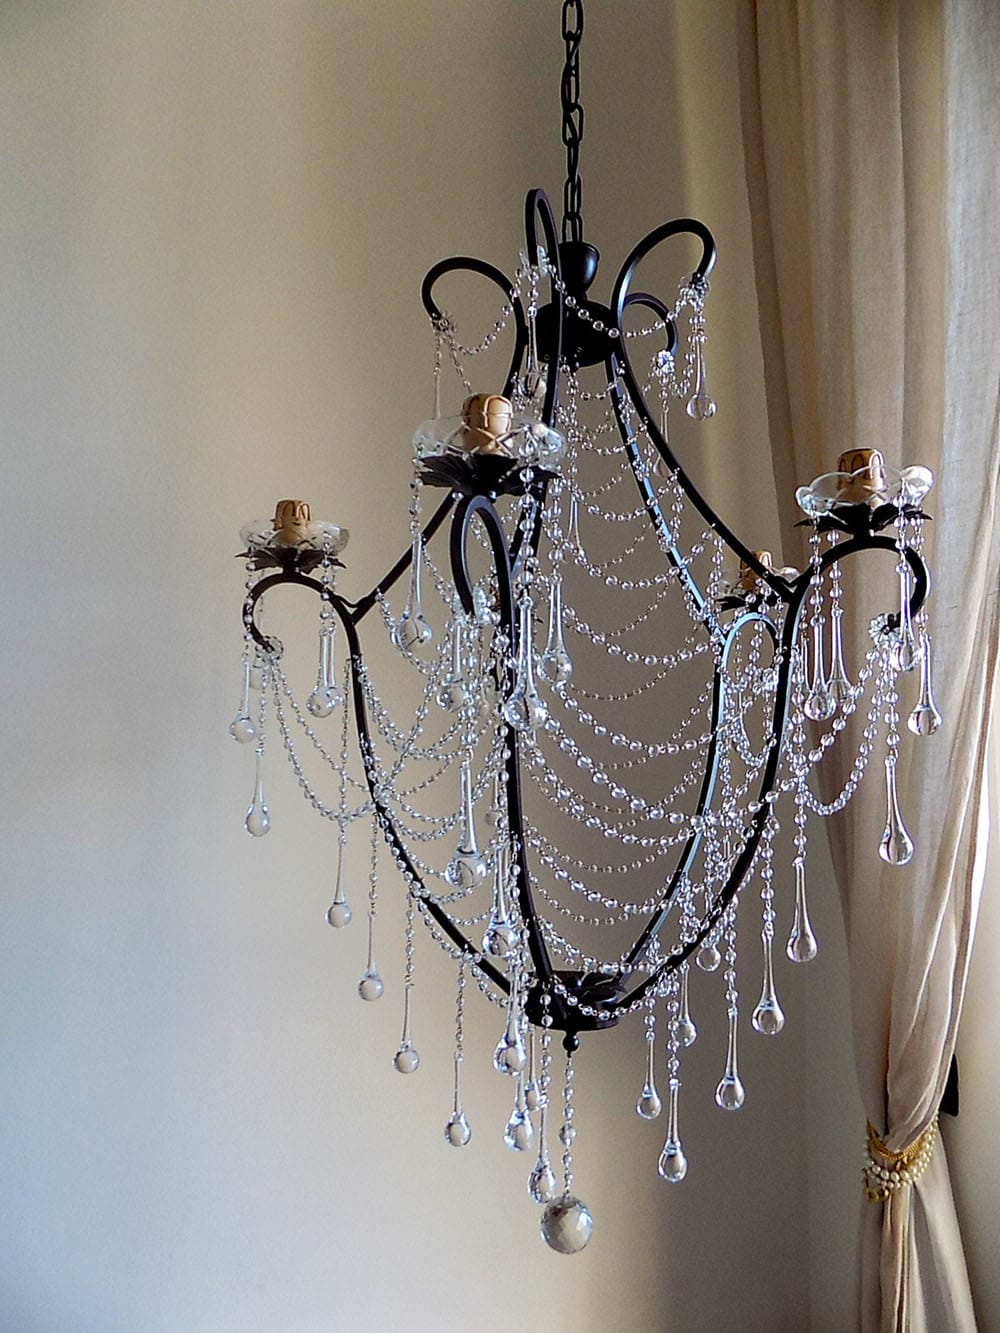 Birdcage crystal chandelier with murano drops lorella dia birdcage crystal chandelier clear murano glass crystals drops and chains aloadofball